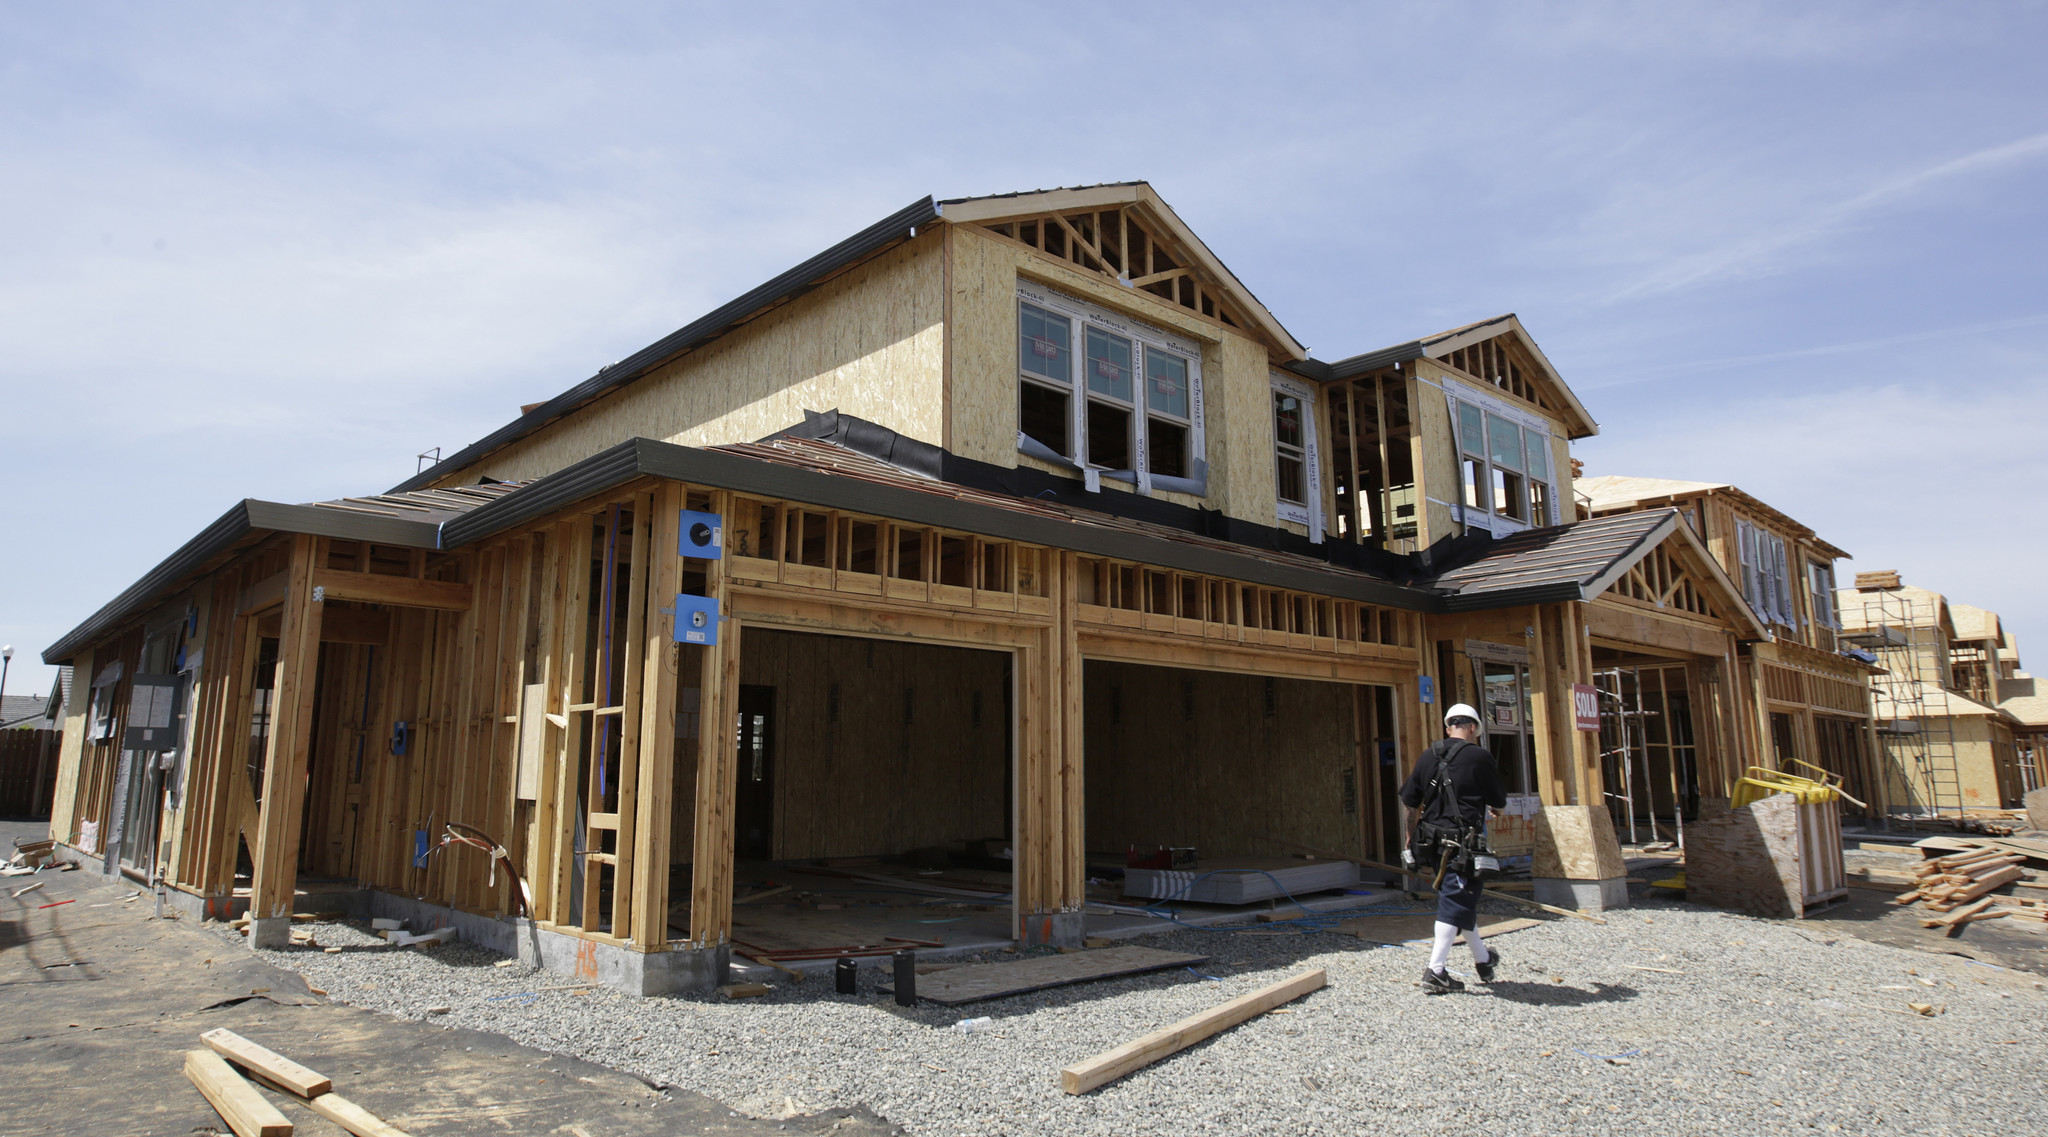 FILE- This May 4, 2018, file photo shows a house under construction in Roseville, Calif. The six maj